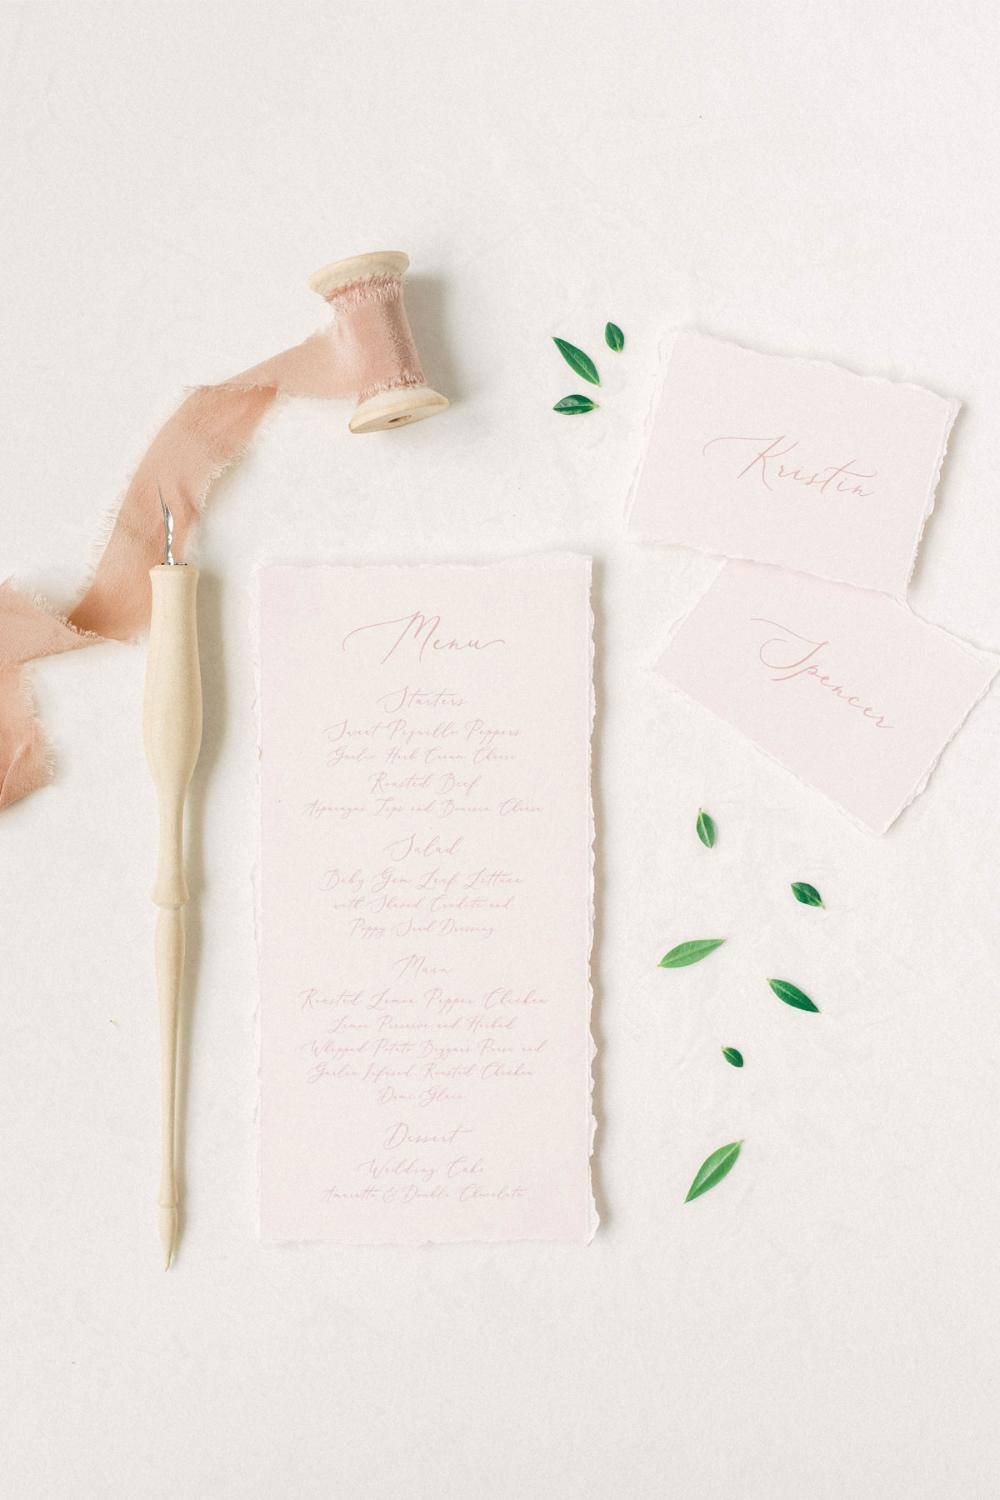 Pale Pink Wedding Menu with Ripped Edges, Delicate Calligraphy Script, Printed Menu